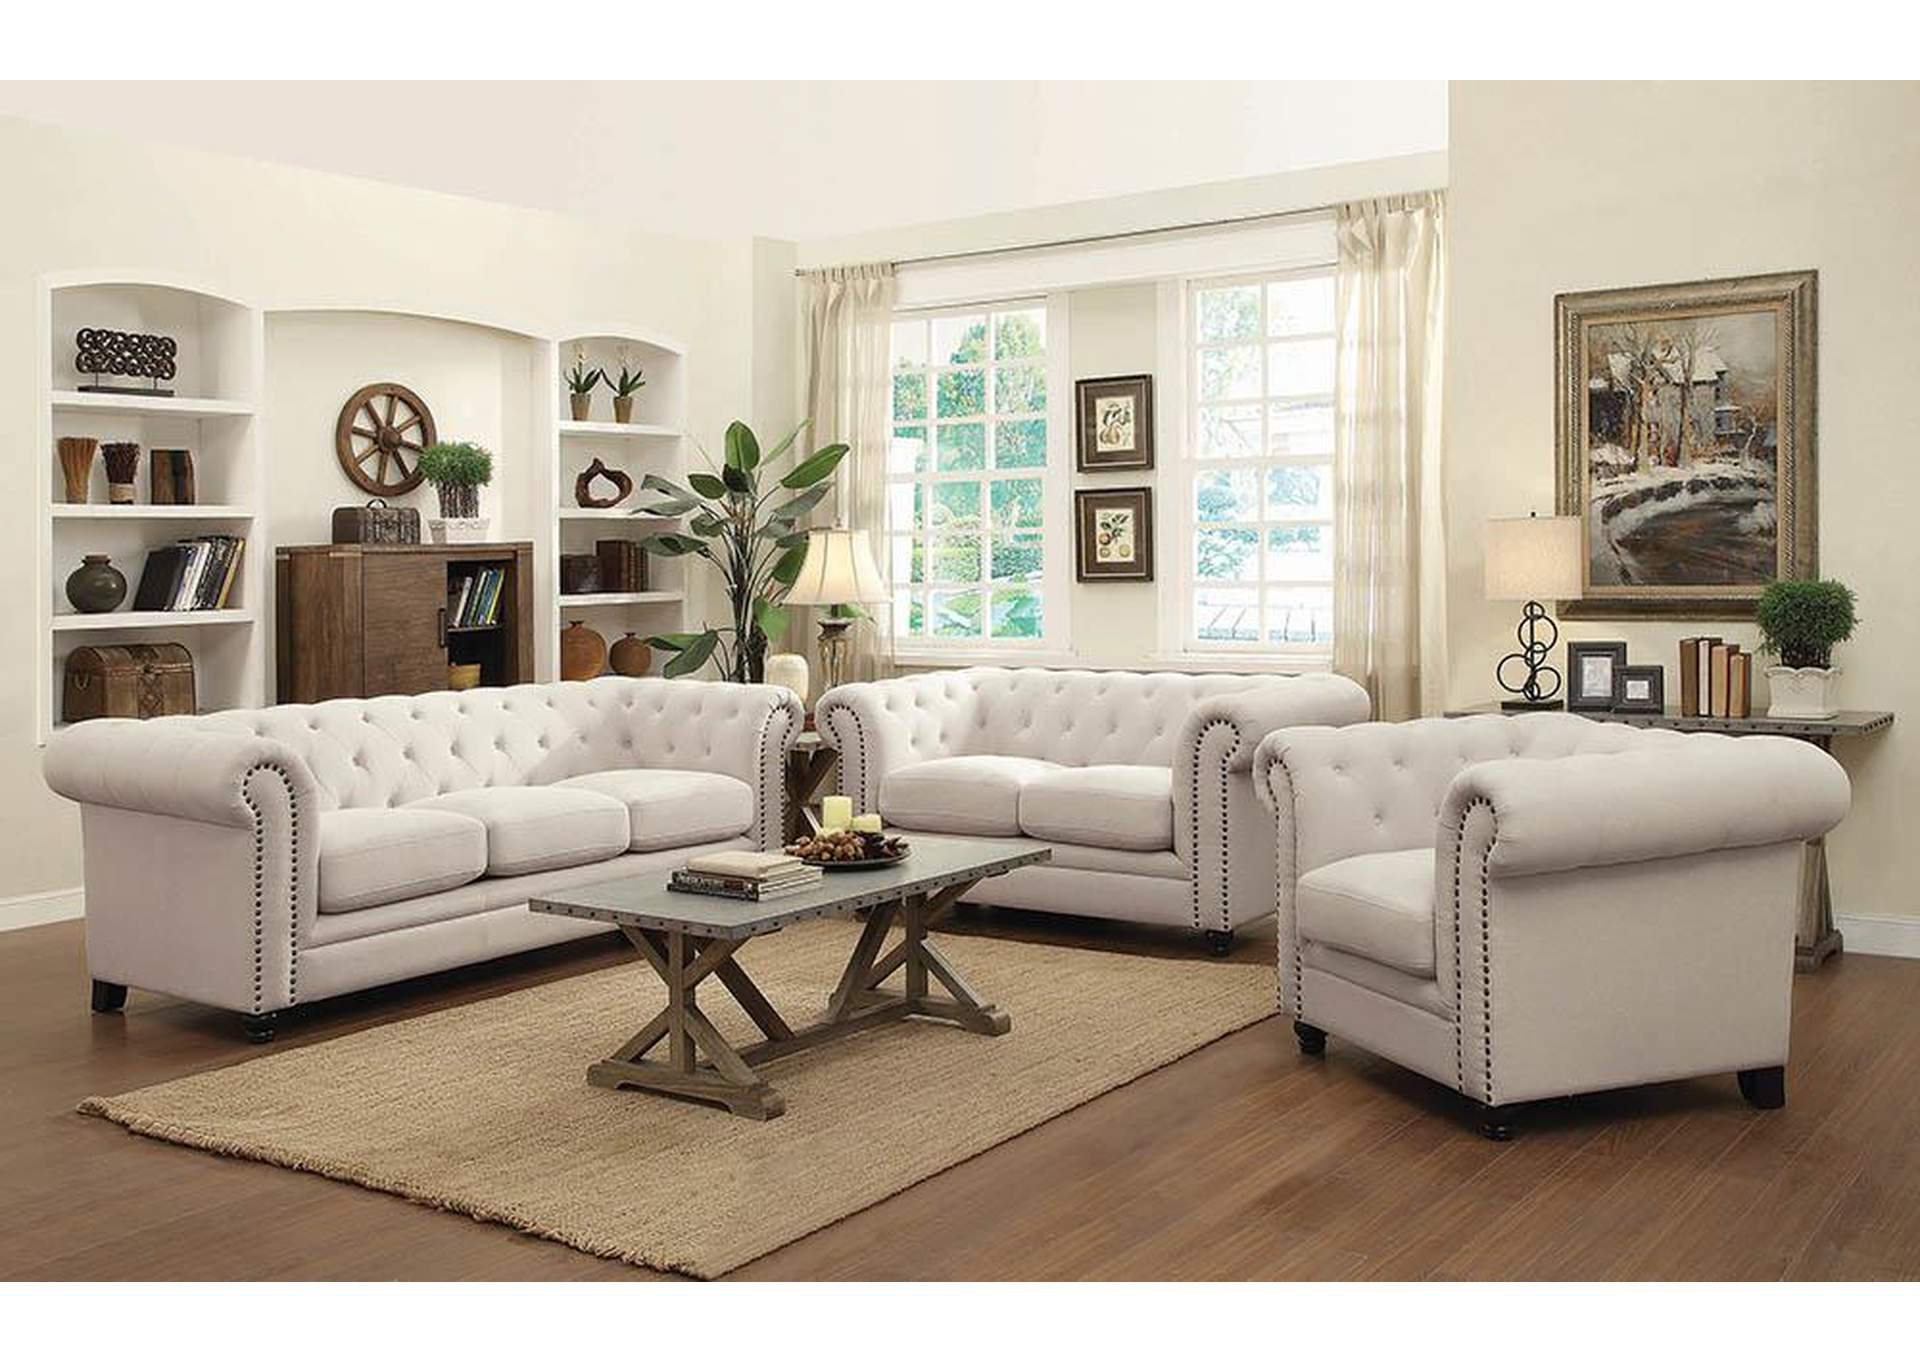 5th avenue furniture mi cream loveseat for Furniture 5th avenue